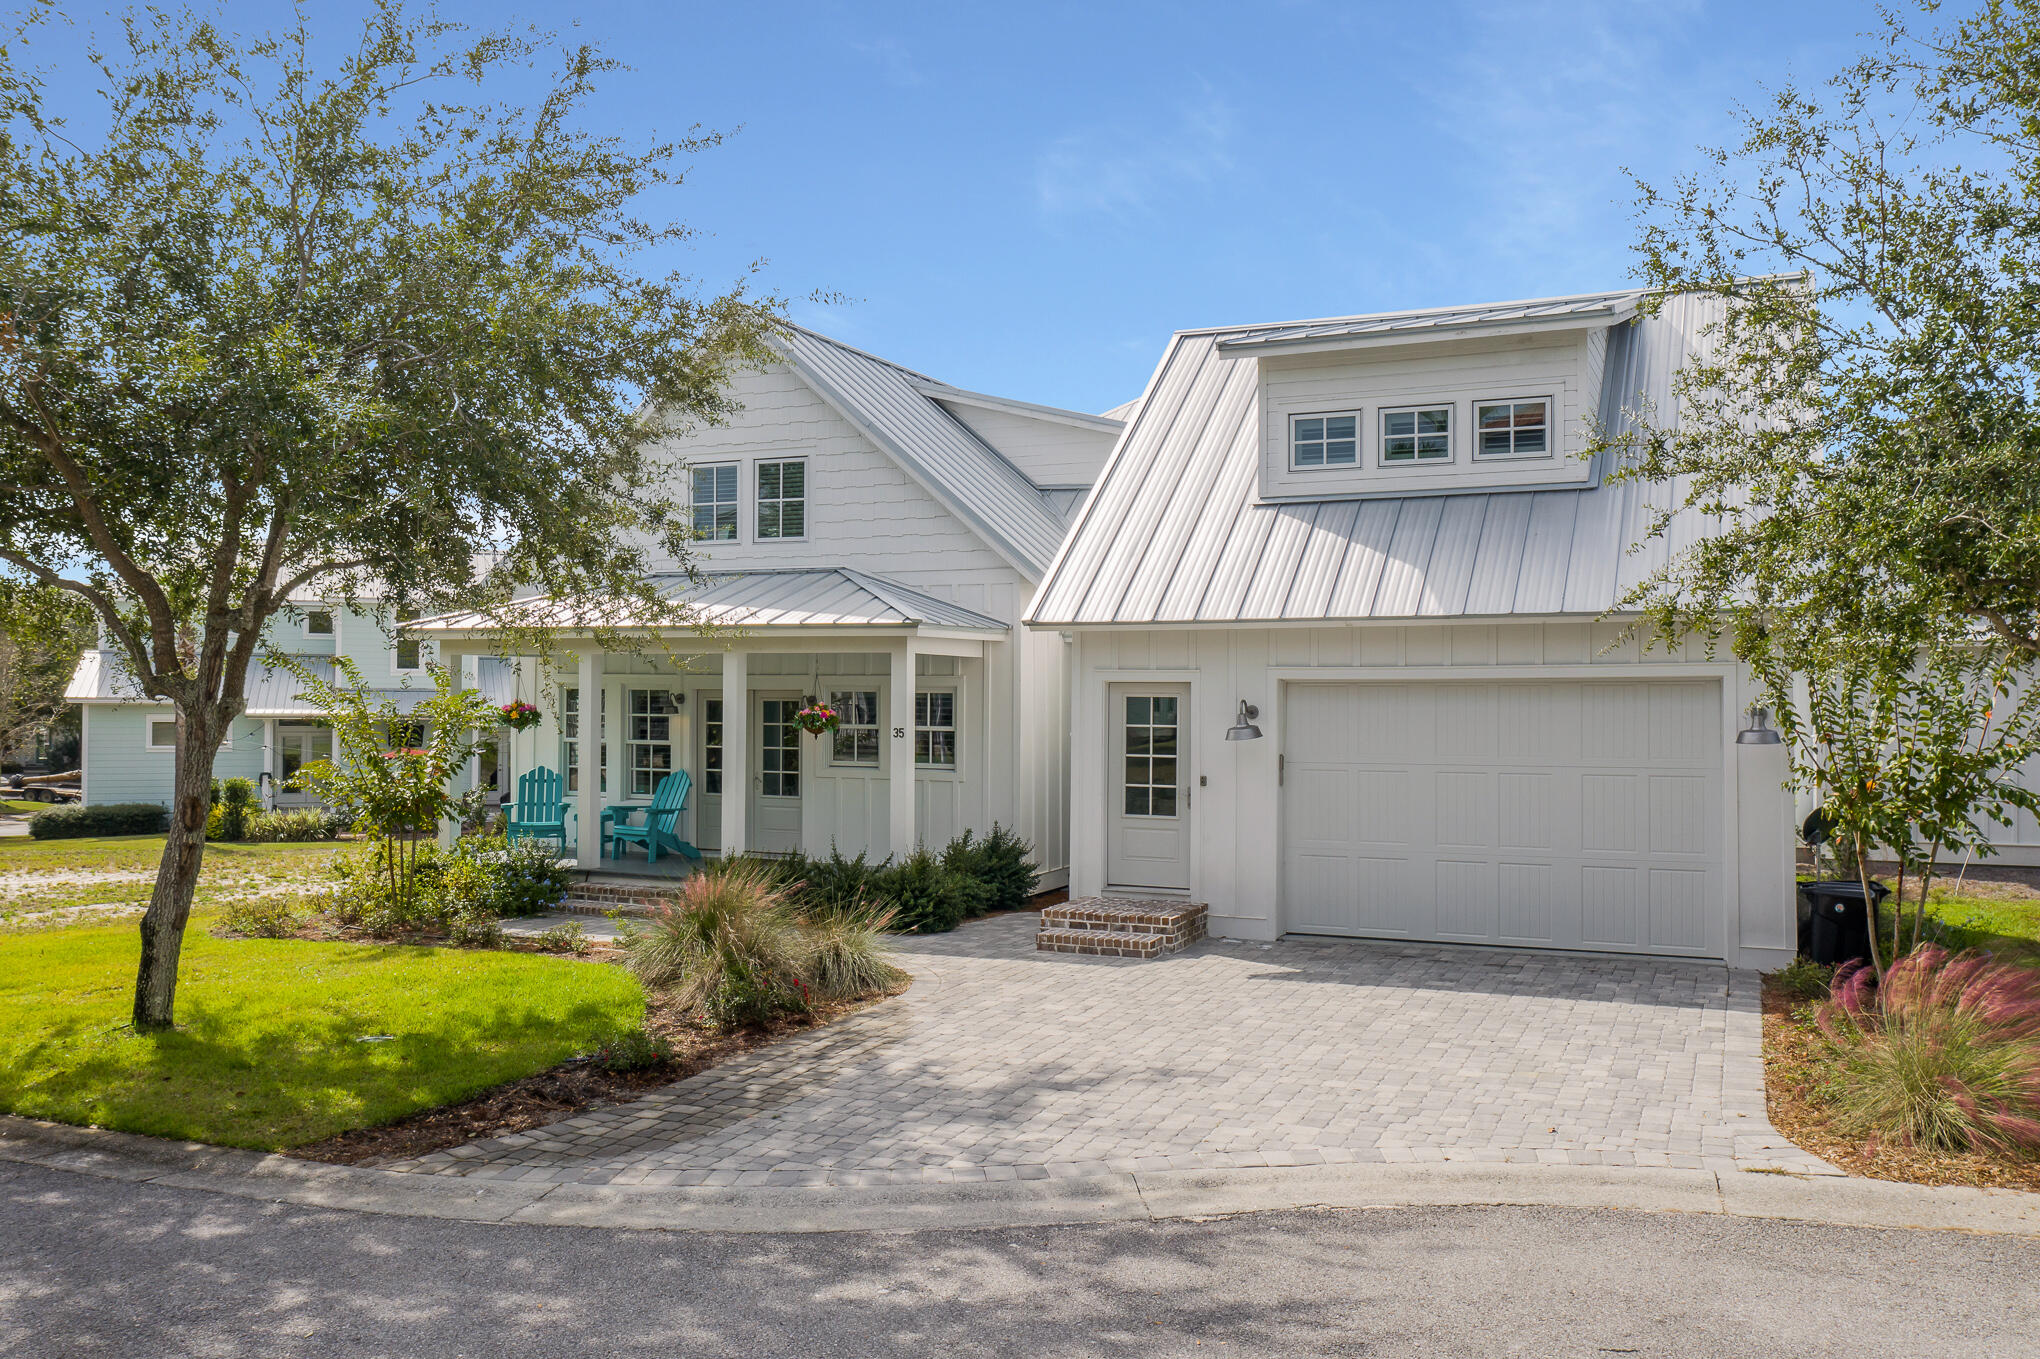 Stunning home in the Village at Blue Mountain Beach with a carriage house! This gorgeous fully furnished 3 bedroom home plus a carriage house sits quietly on the end of the street just off of Hwy 30A and features quartz coutertops, luxury vinyl flooring, gas cooktop, energy efficient LED lighting, stainless steel appliances, and just a short distance to the beach! The neighborhood is gated and has a community pool, shuffle board, and a putting green!This home makes exceptional place to live or a phenomenal investment oppertunity! Don't miss out on this well kept home!